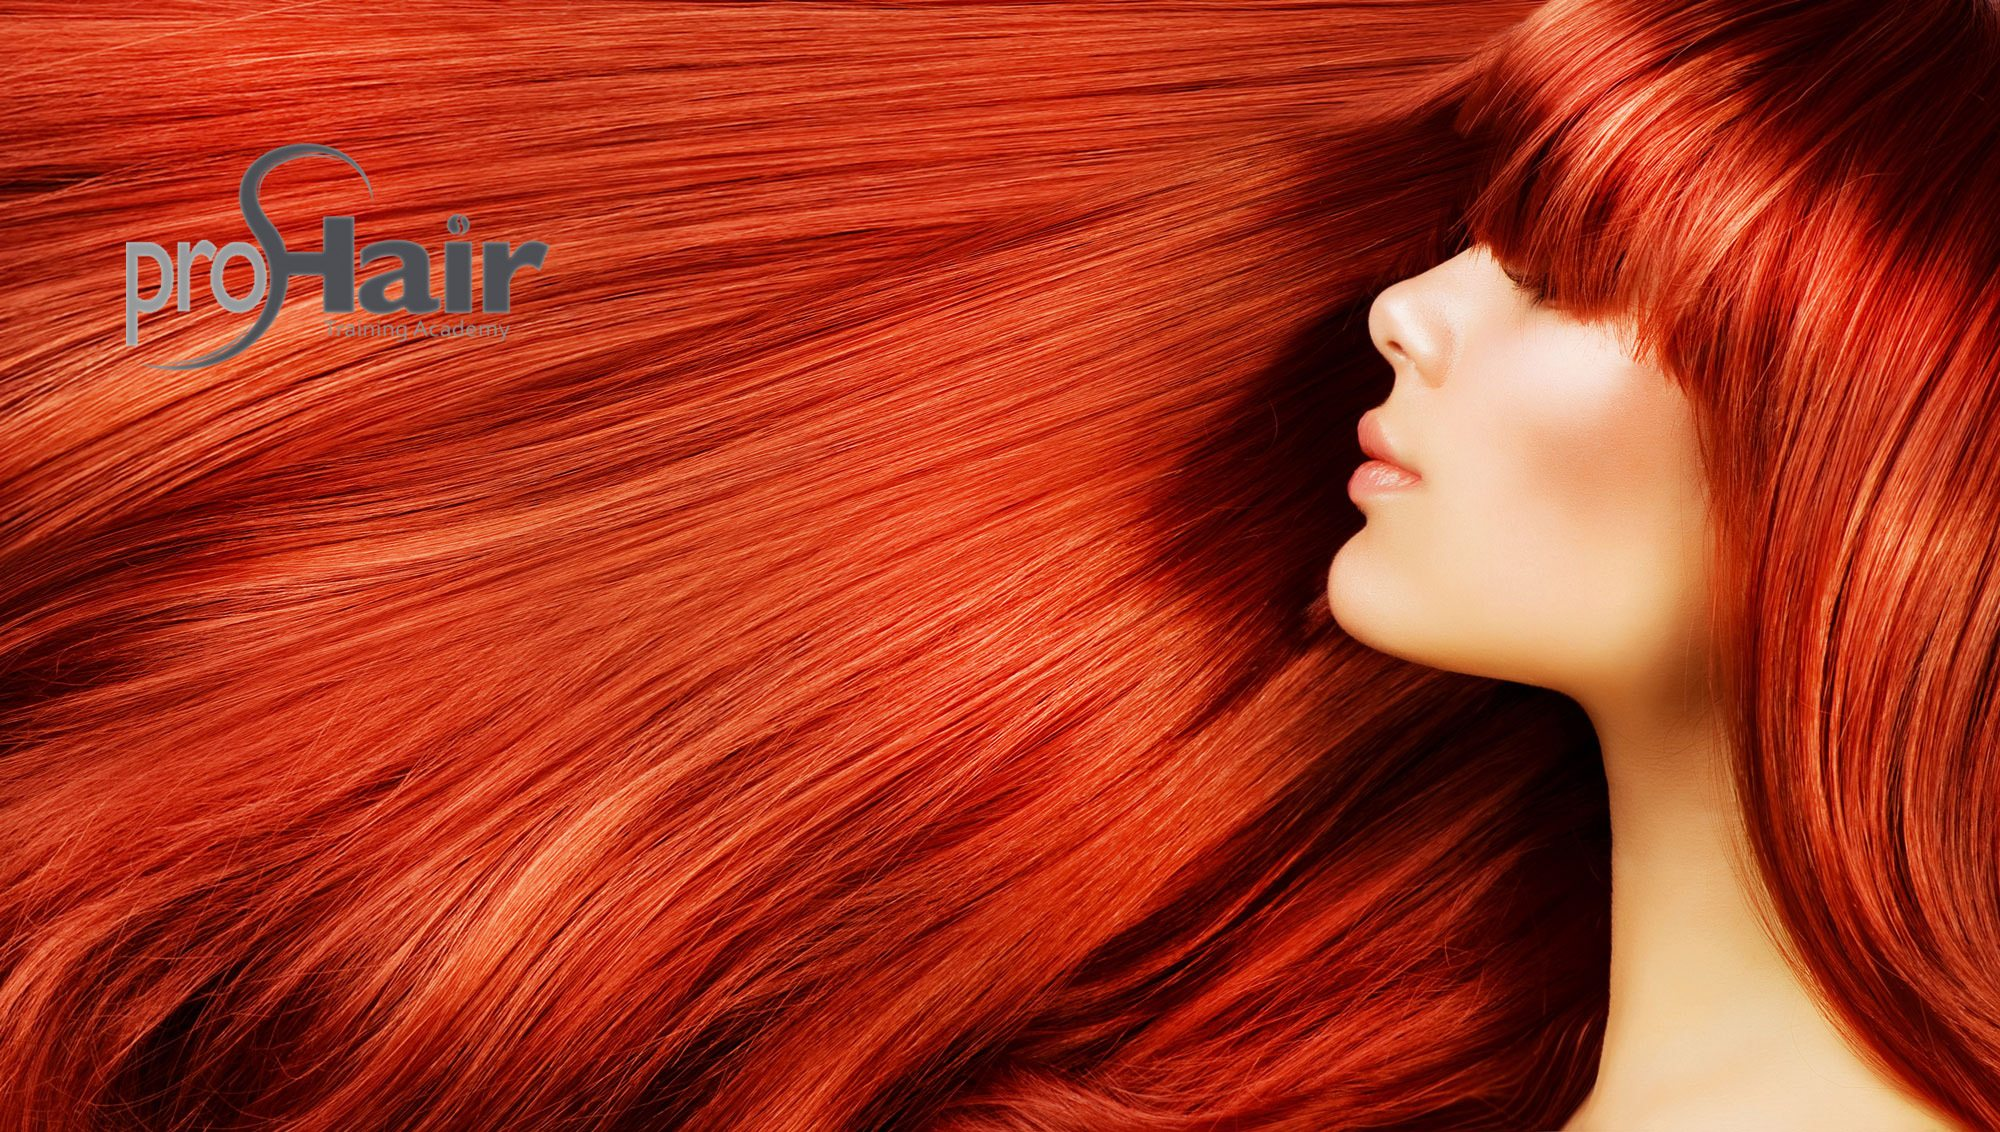 5 minutes with pro hair training